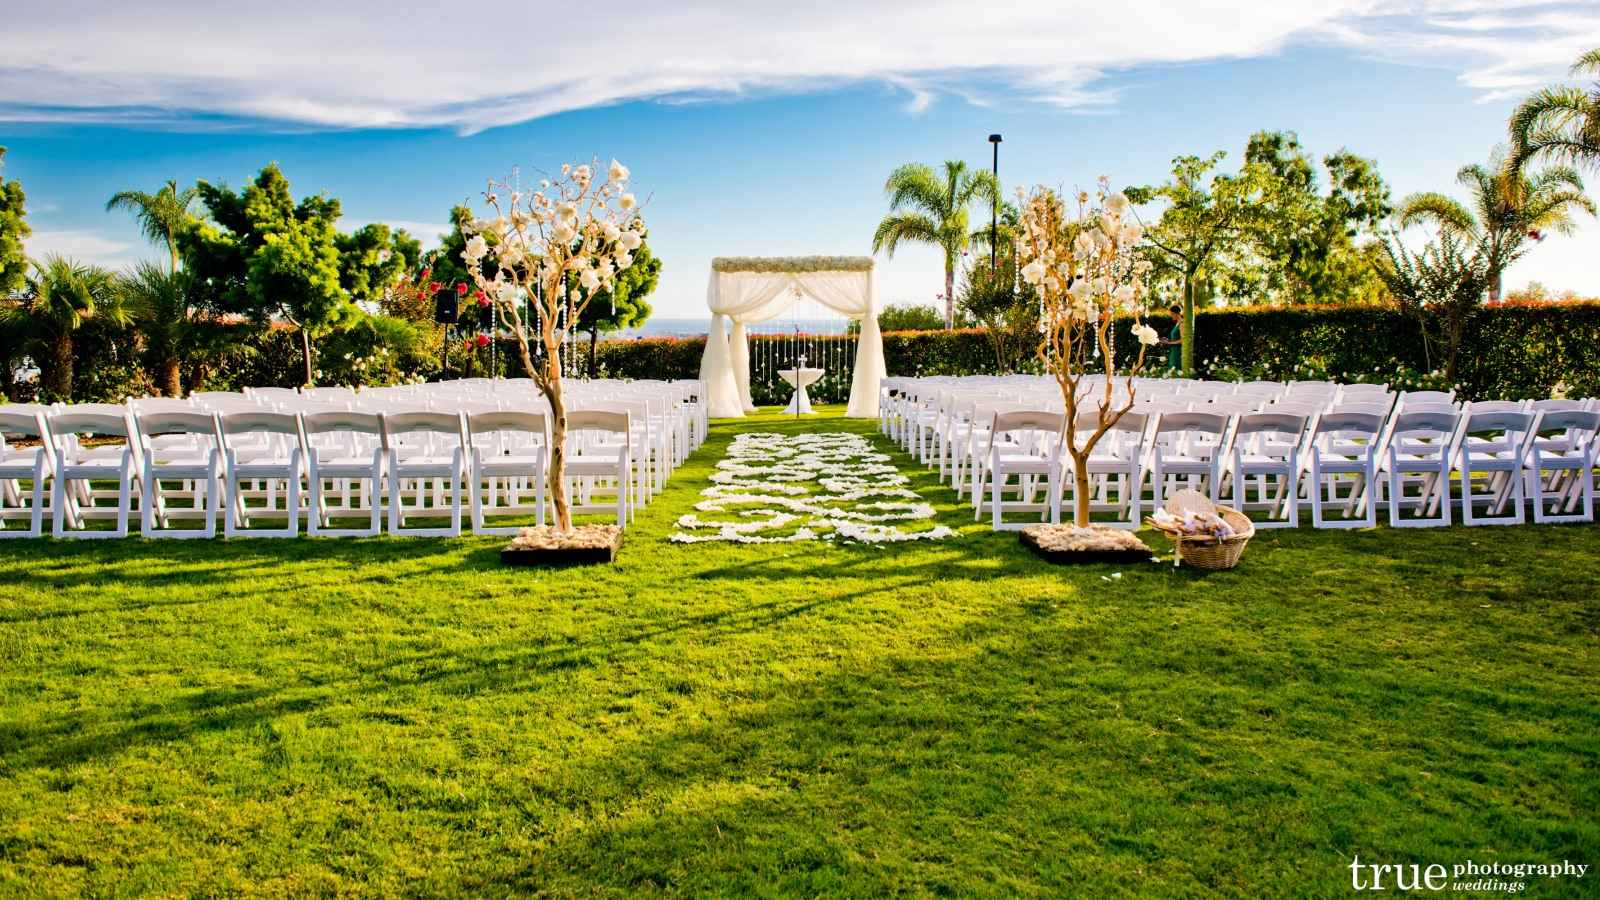 Outdoor Wedding Venue Photo Gallery: Sheraton Carlsbad Resort & Spa